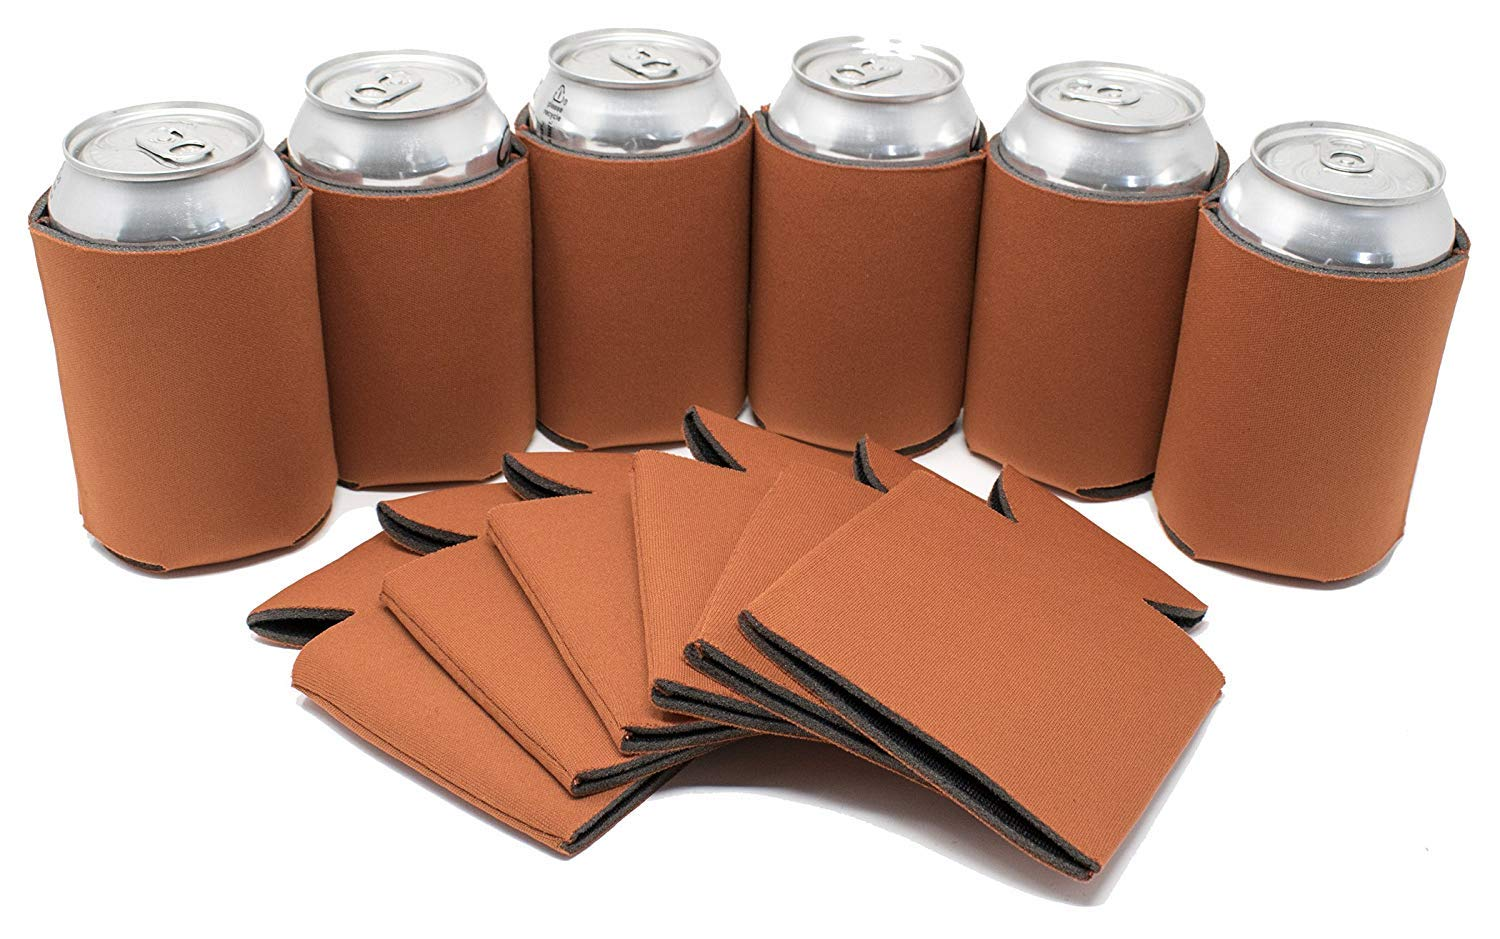 TahoeBay 12 Blank Beer Can Coolers, Plain Bulk Collapsible Soda Cover Coolies, DIY Personalized Sublimation Sleeves for Weddings, Bachelorette Parties, Funny HTV Party Favors (Texas Orange, 12)